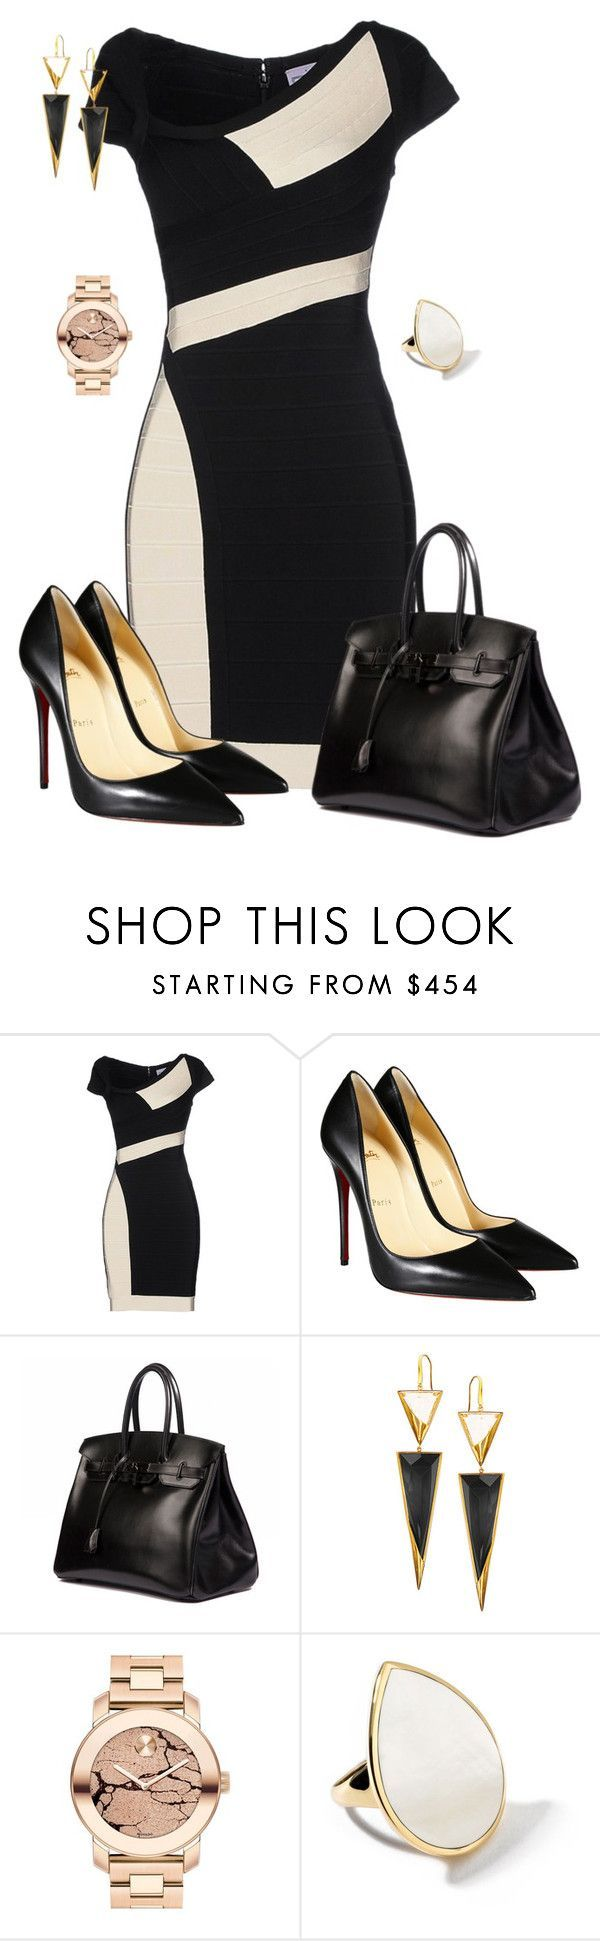 """Untitled #606"" by angela-vitello on Polyvore featuring Hervé Léger, Christian Louboutin, Hermès, Lana, Movado and Ippolita"